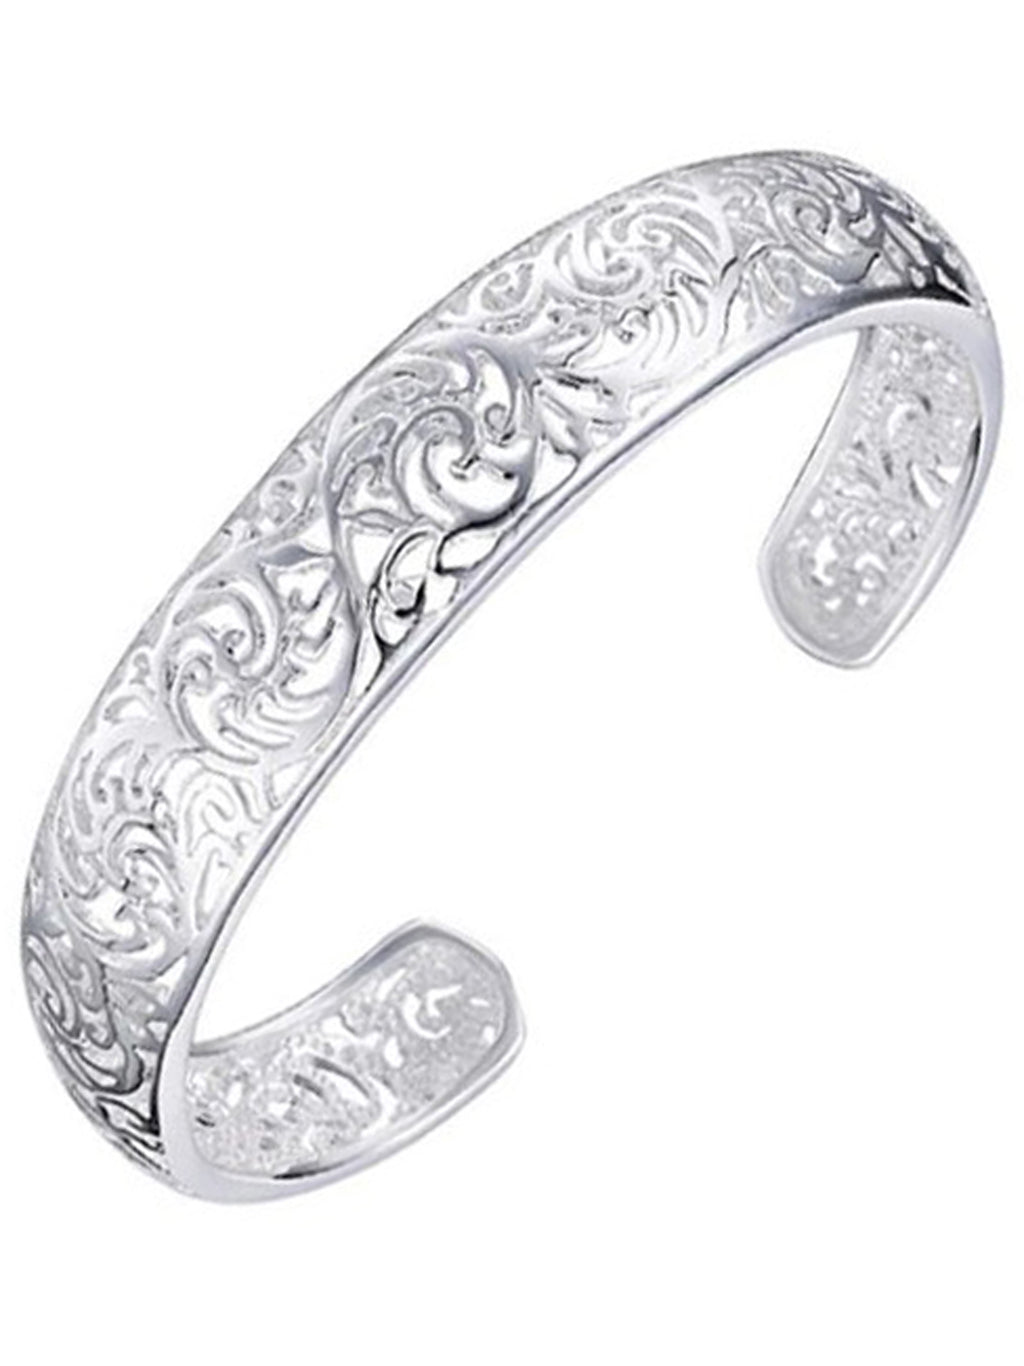 Sterling Silver Plated Filigree Bangle Cuff Bracelet